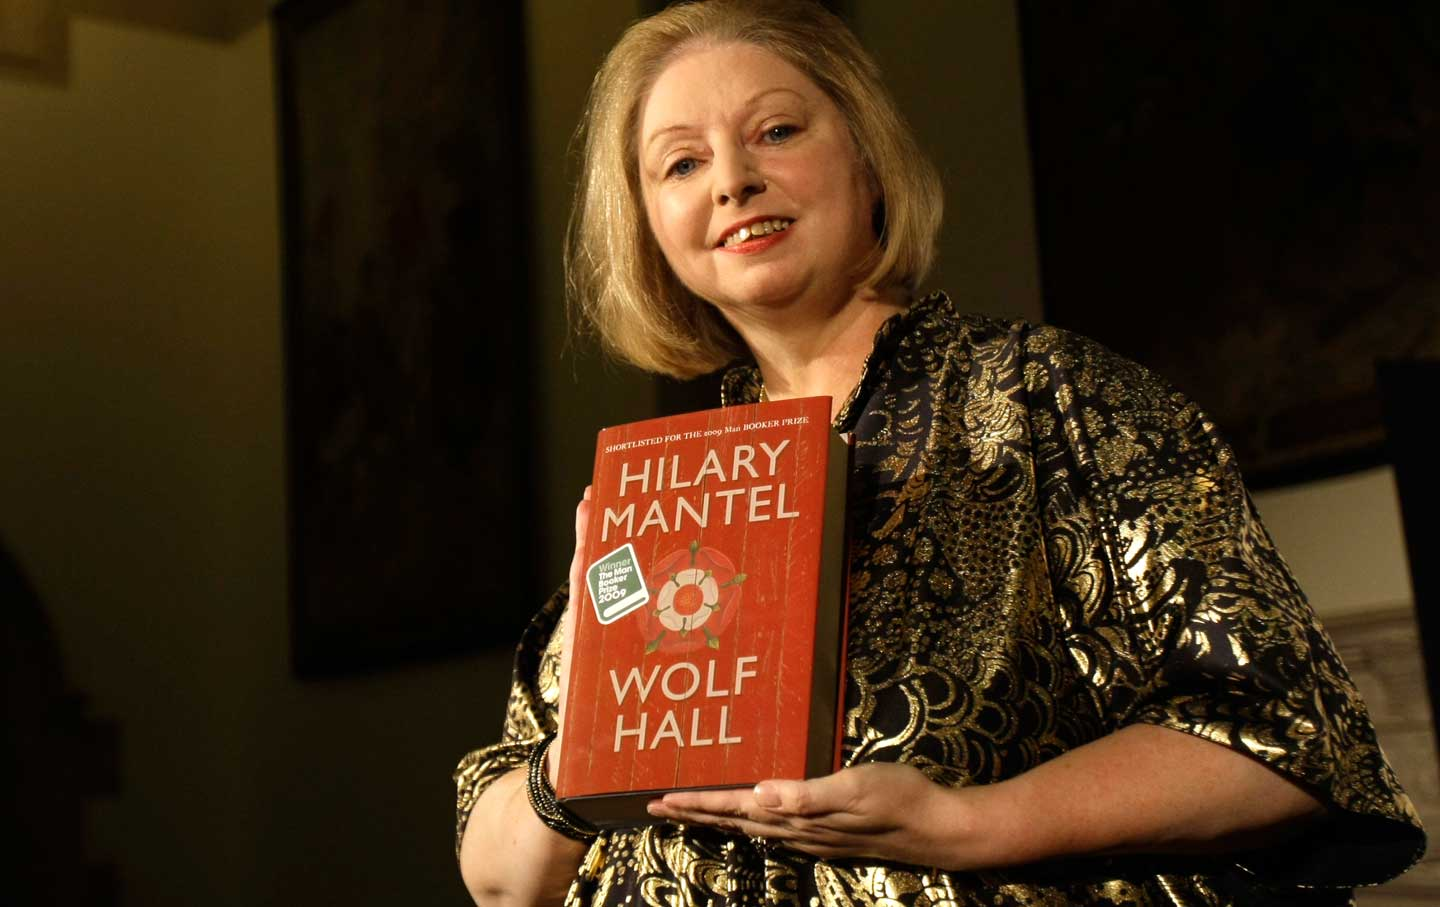 Hilary-Mantel-following-Booker-Prize-award-announcement-October-6-2009